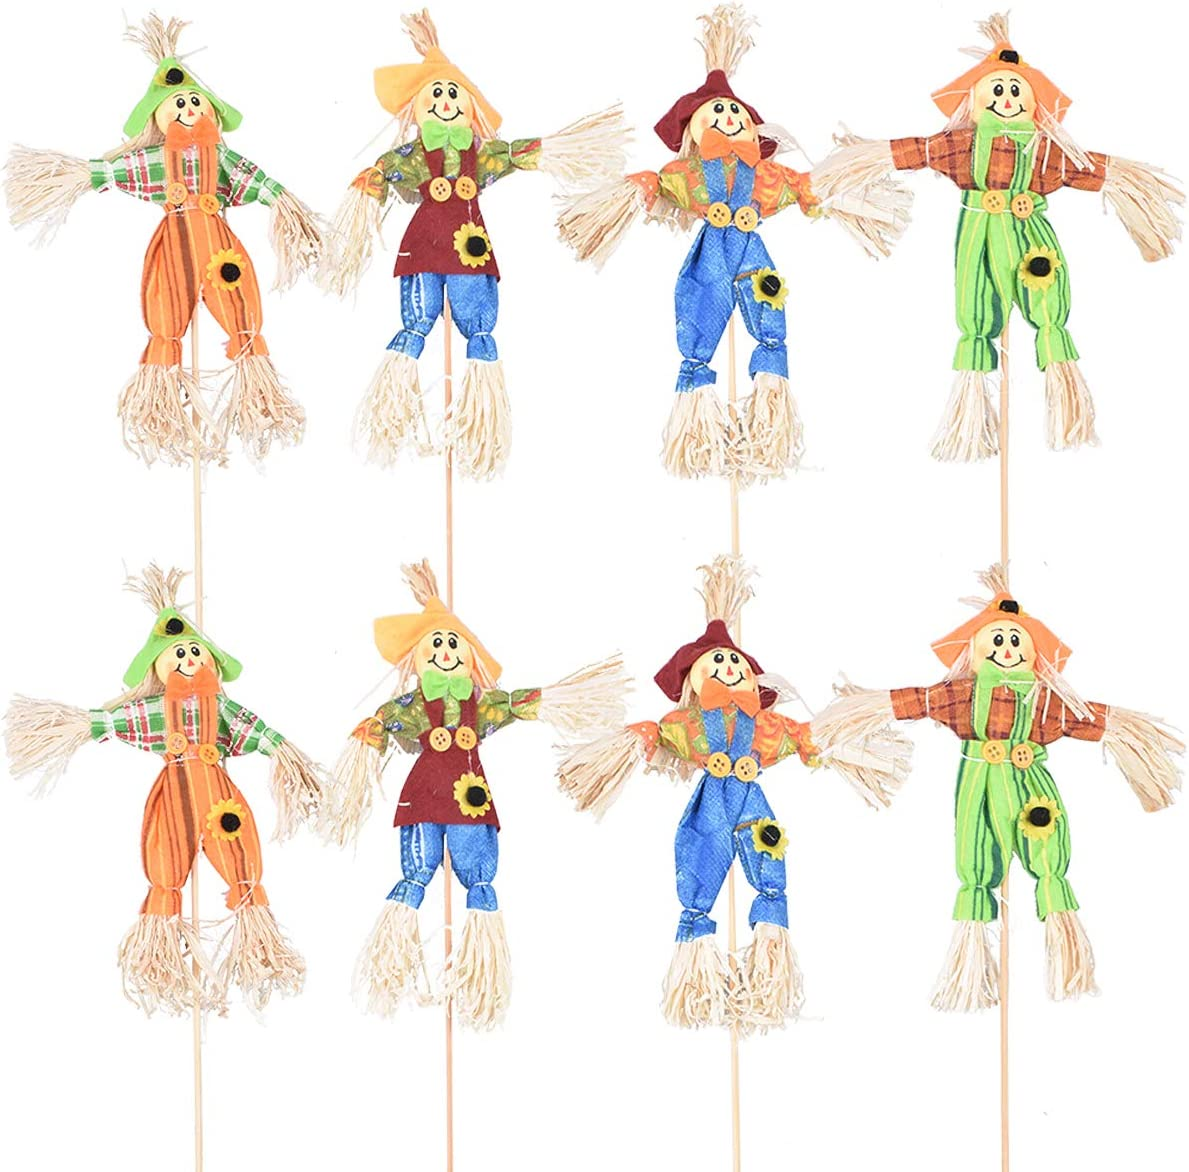 Halloween Fall Harvest Scarecrow Decoration, 8 Pack Small Standing Scarecrow Decor for Autumn, Halloween, Garden, Home, Yard, Porch, Thanksgiving Décor